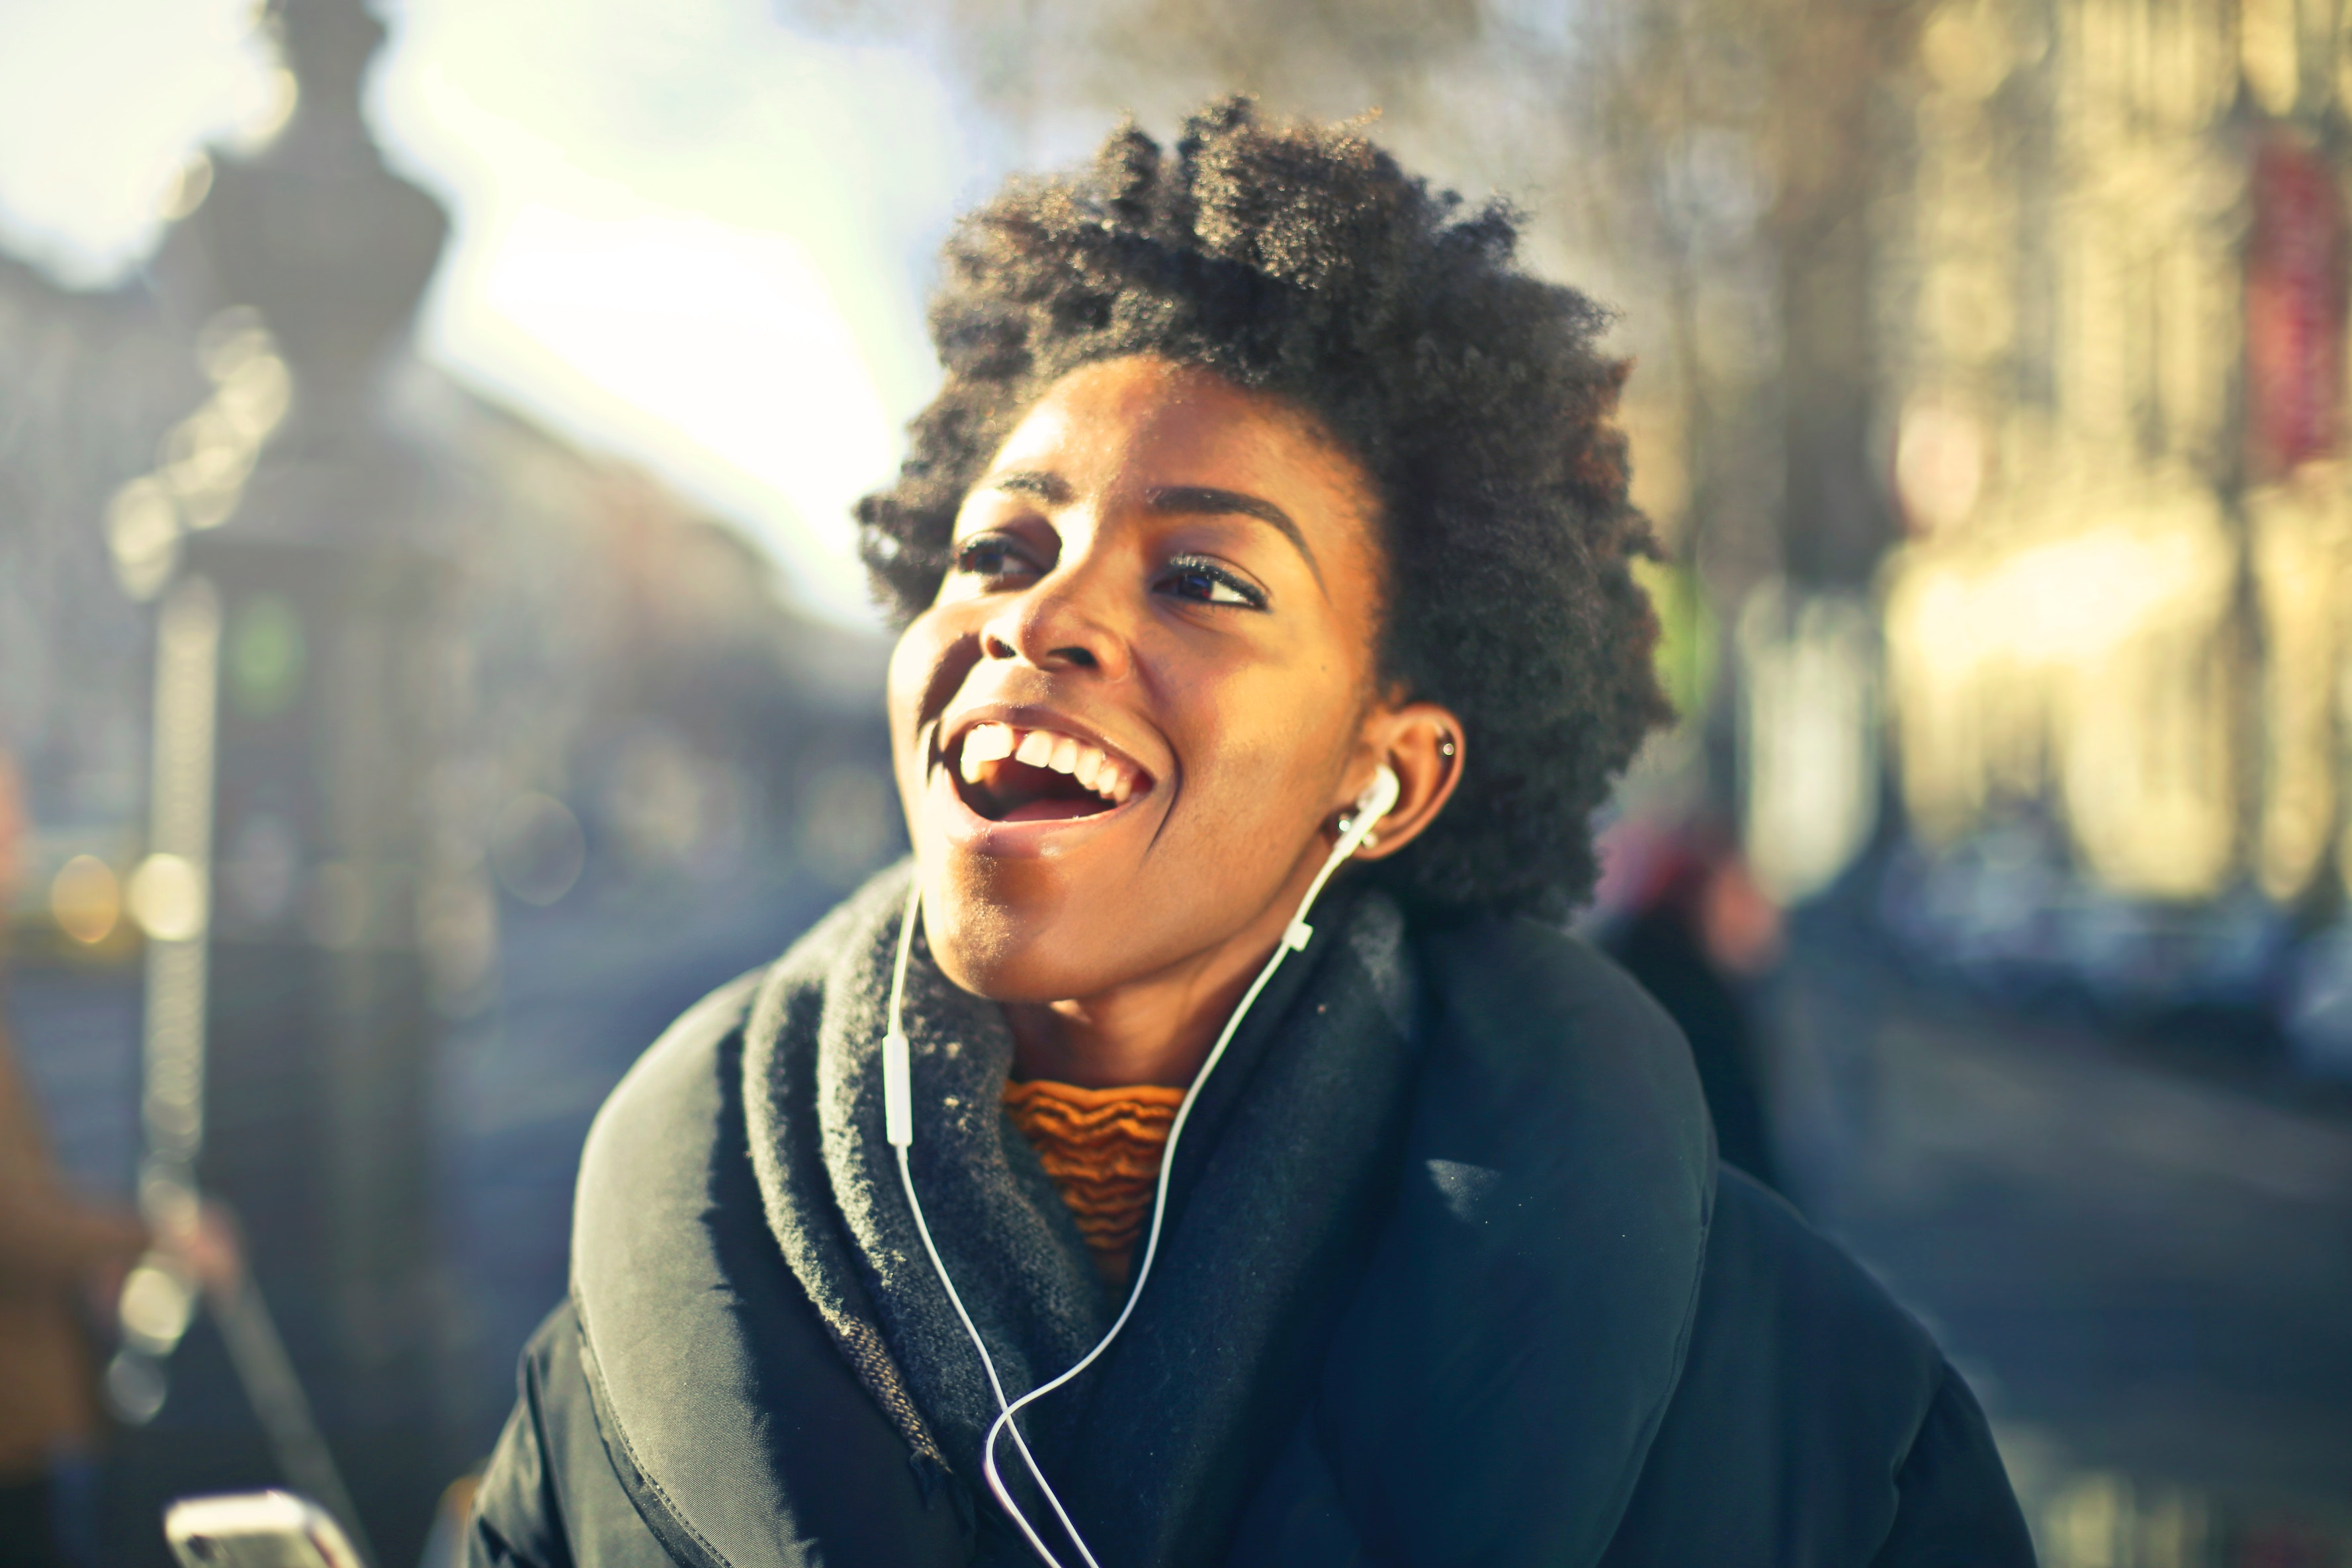 Close-up photo of a woman listening to music